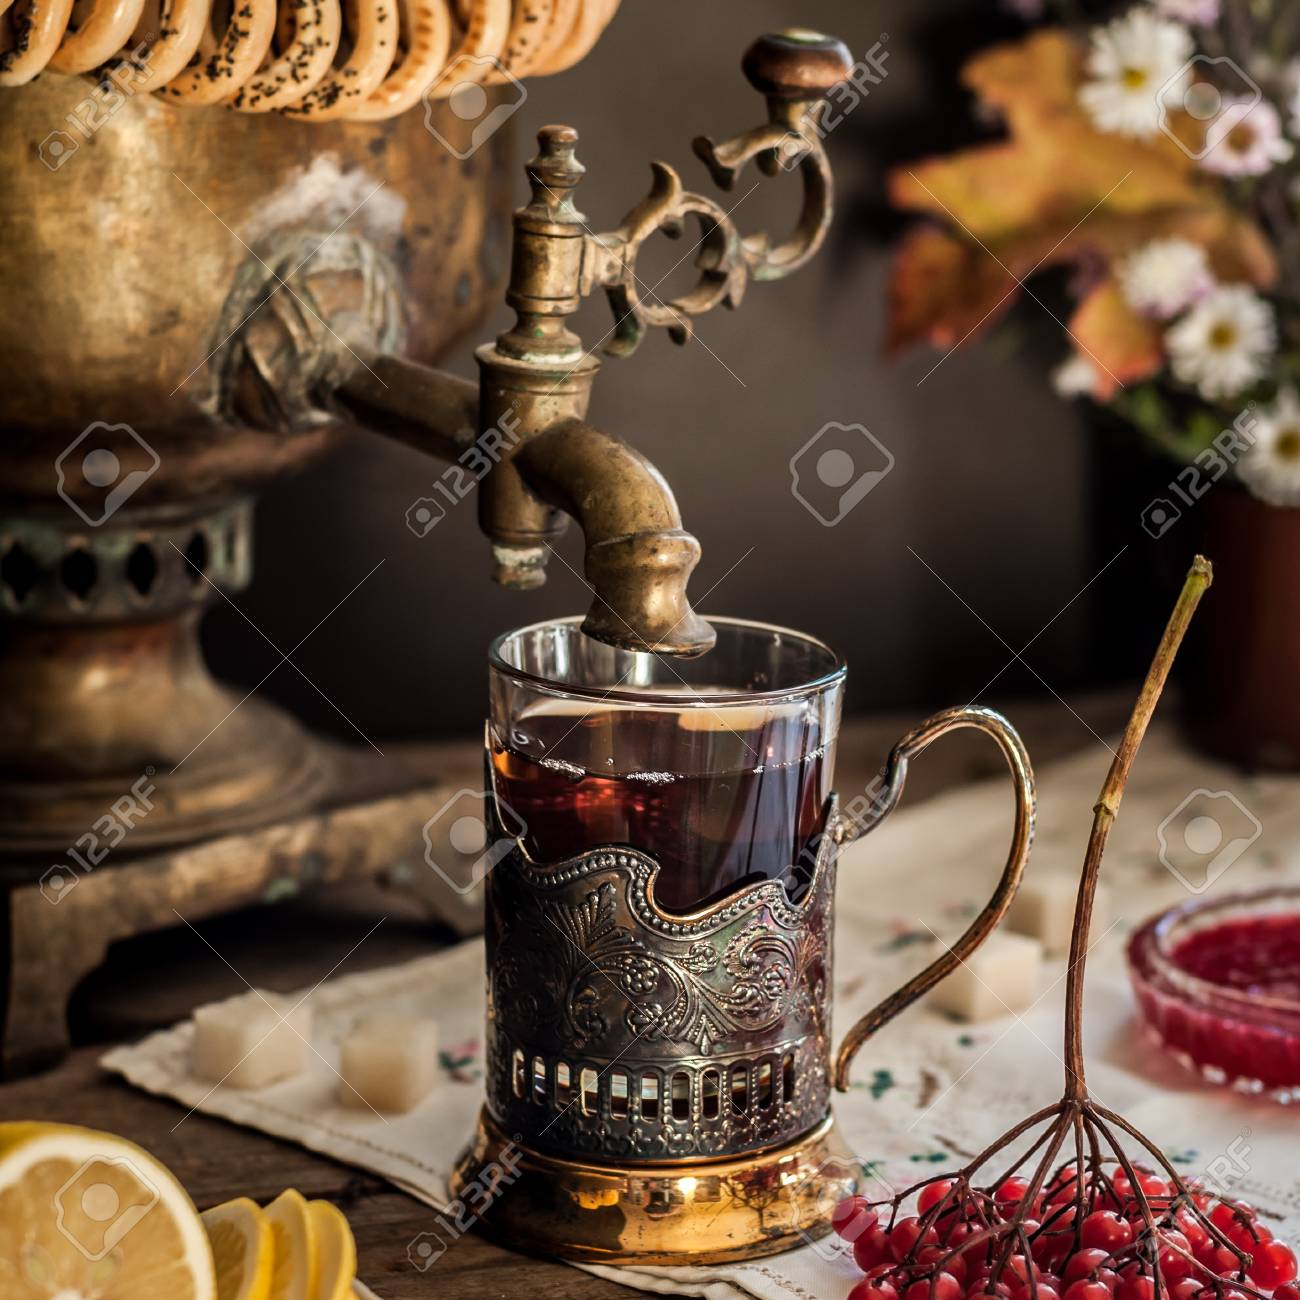 Russian Tea From Samovar A Glass In Glass Holder Black Tea Stock Photo Picture And Royalty Free Image Image 92792537